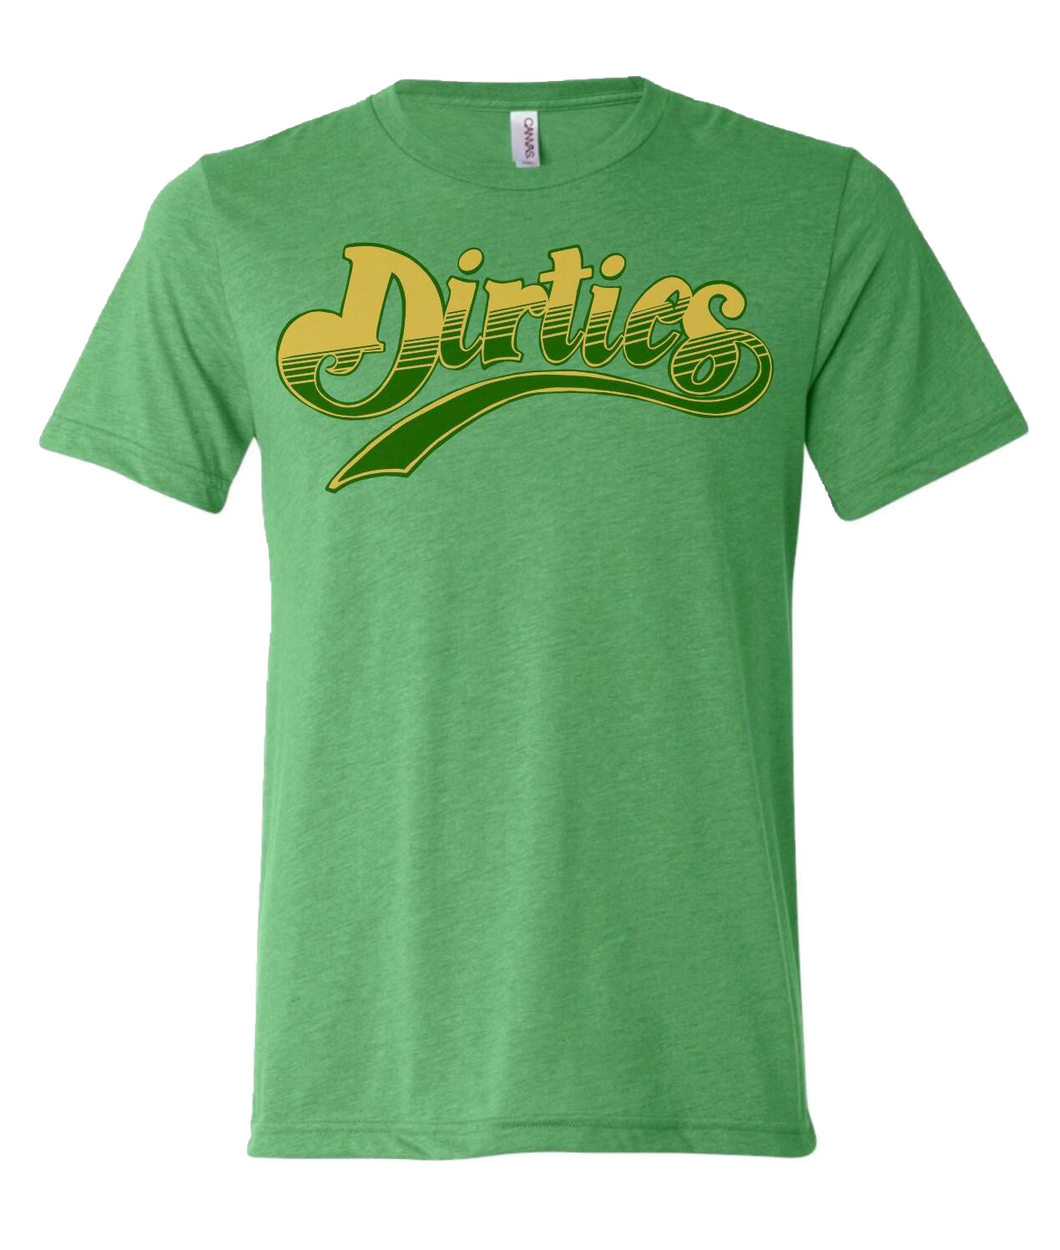 Dirties Tee - Men's